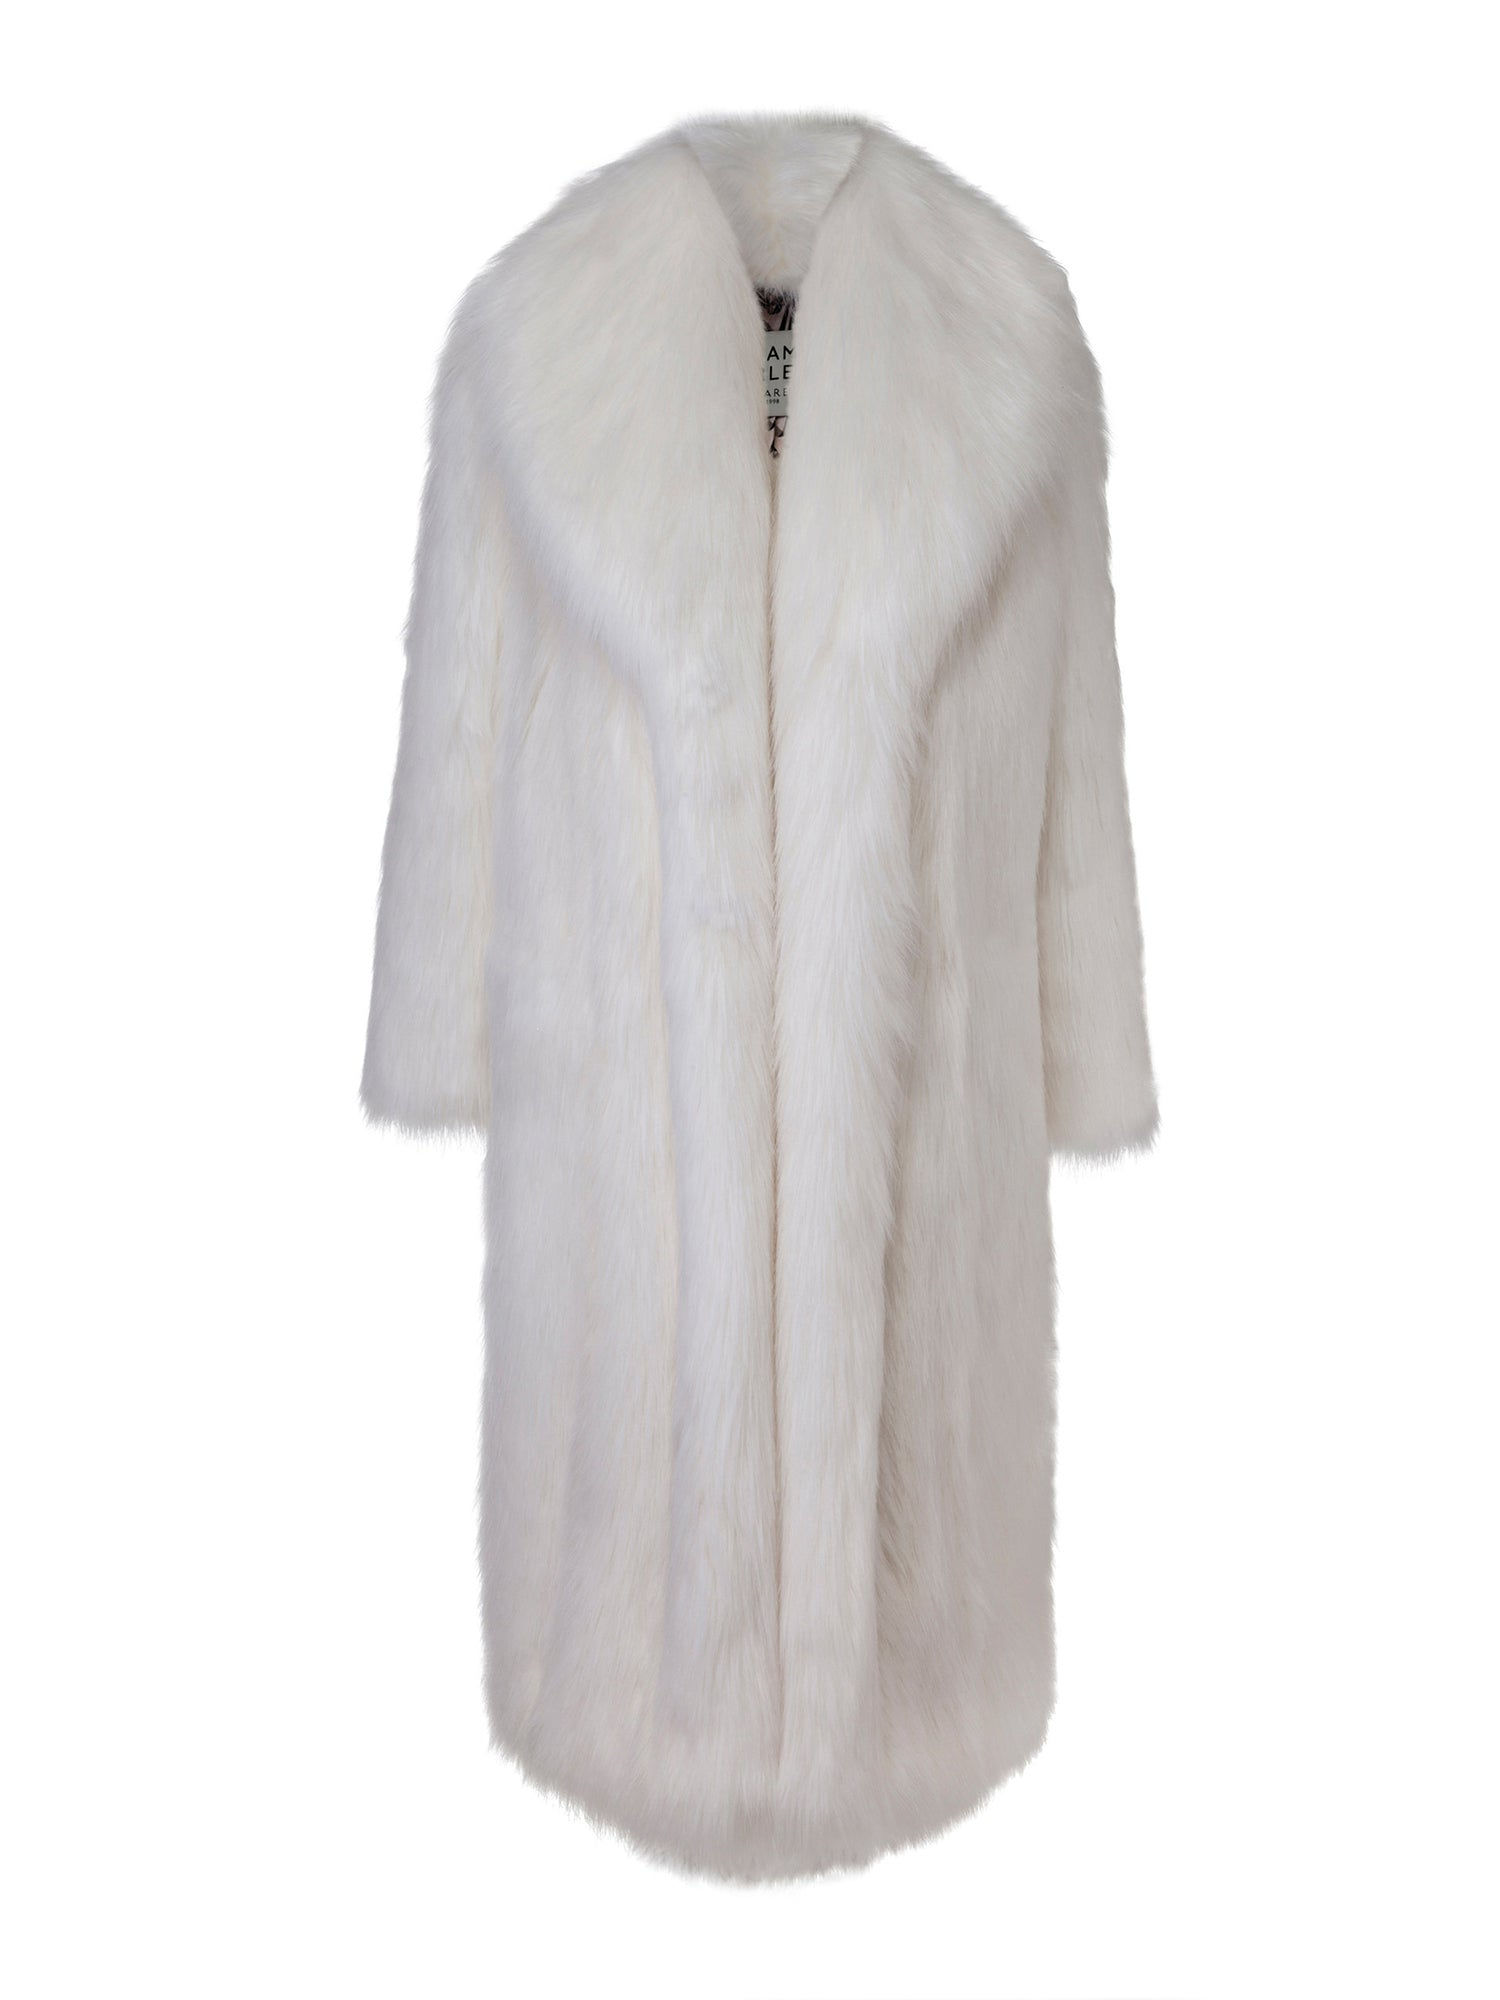 A Packshot Of Marei1998's Datura Long Faux Fur Coat In Ivory Color. Featuring A Slight A-Lined Silhouette, It Is Made From The Fluffiest Long Pile Faux Fur. Front View.